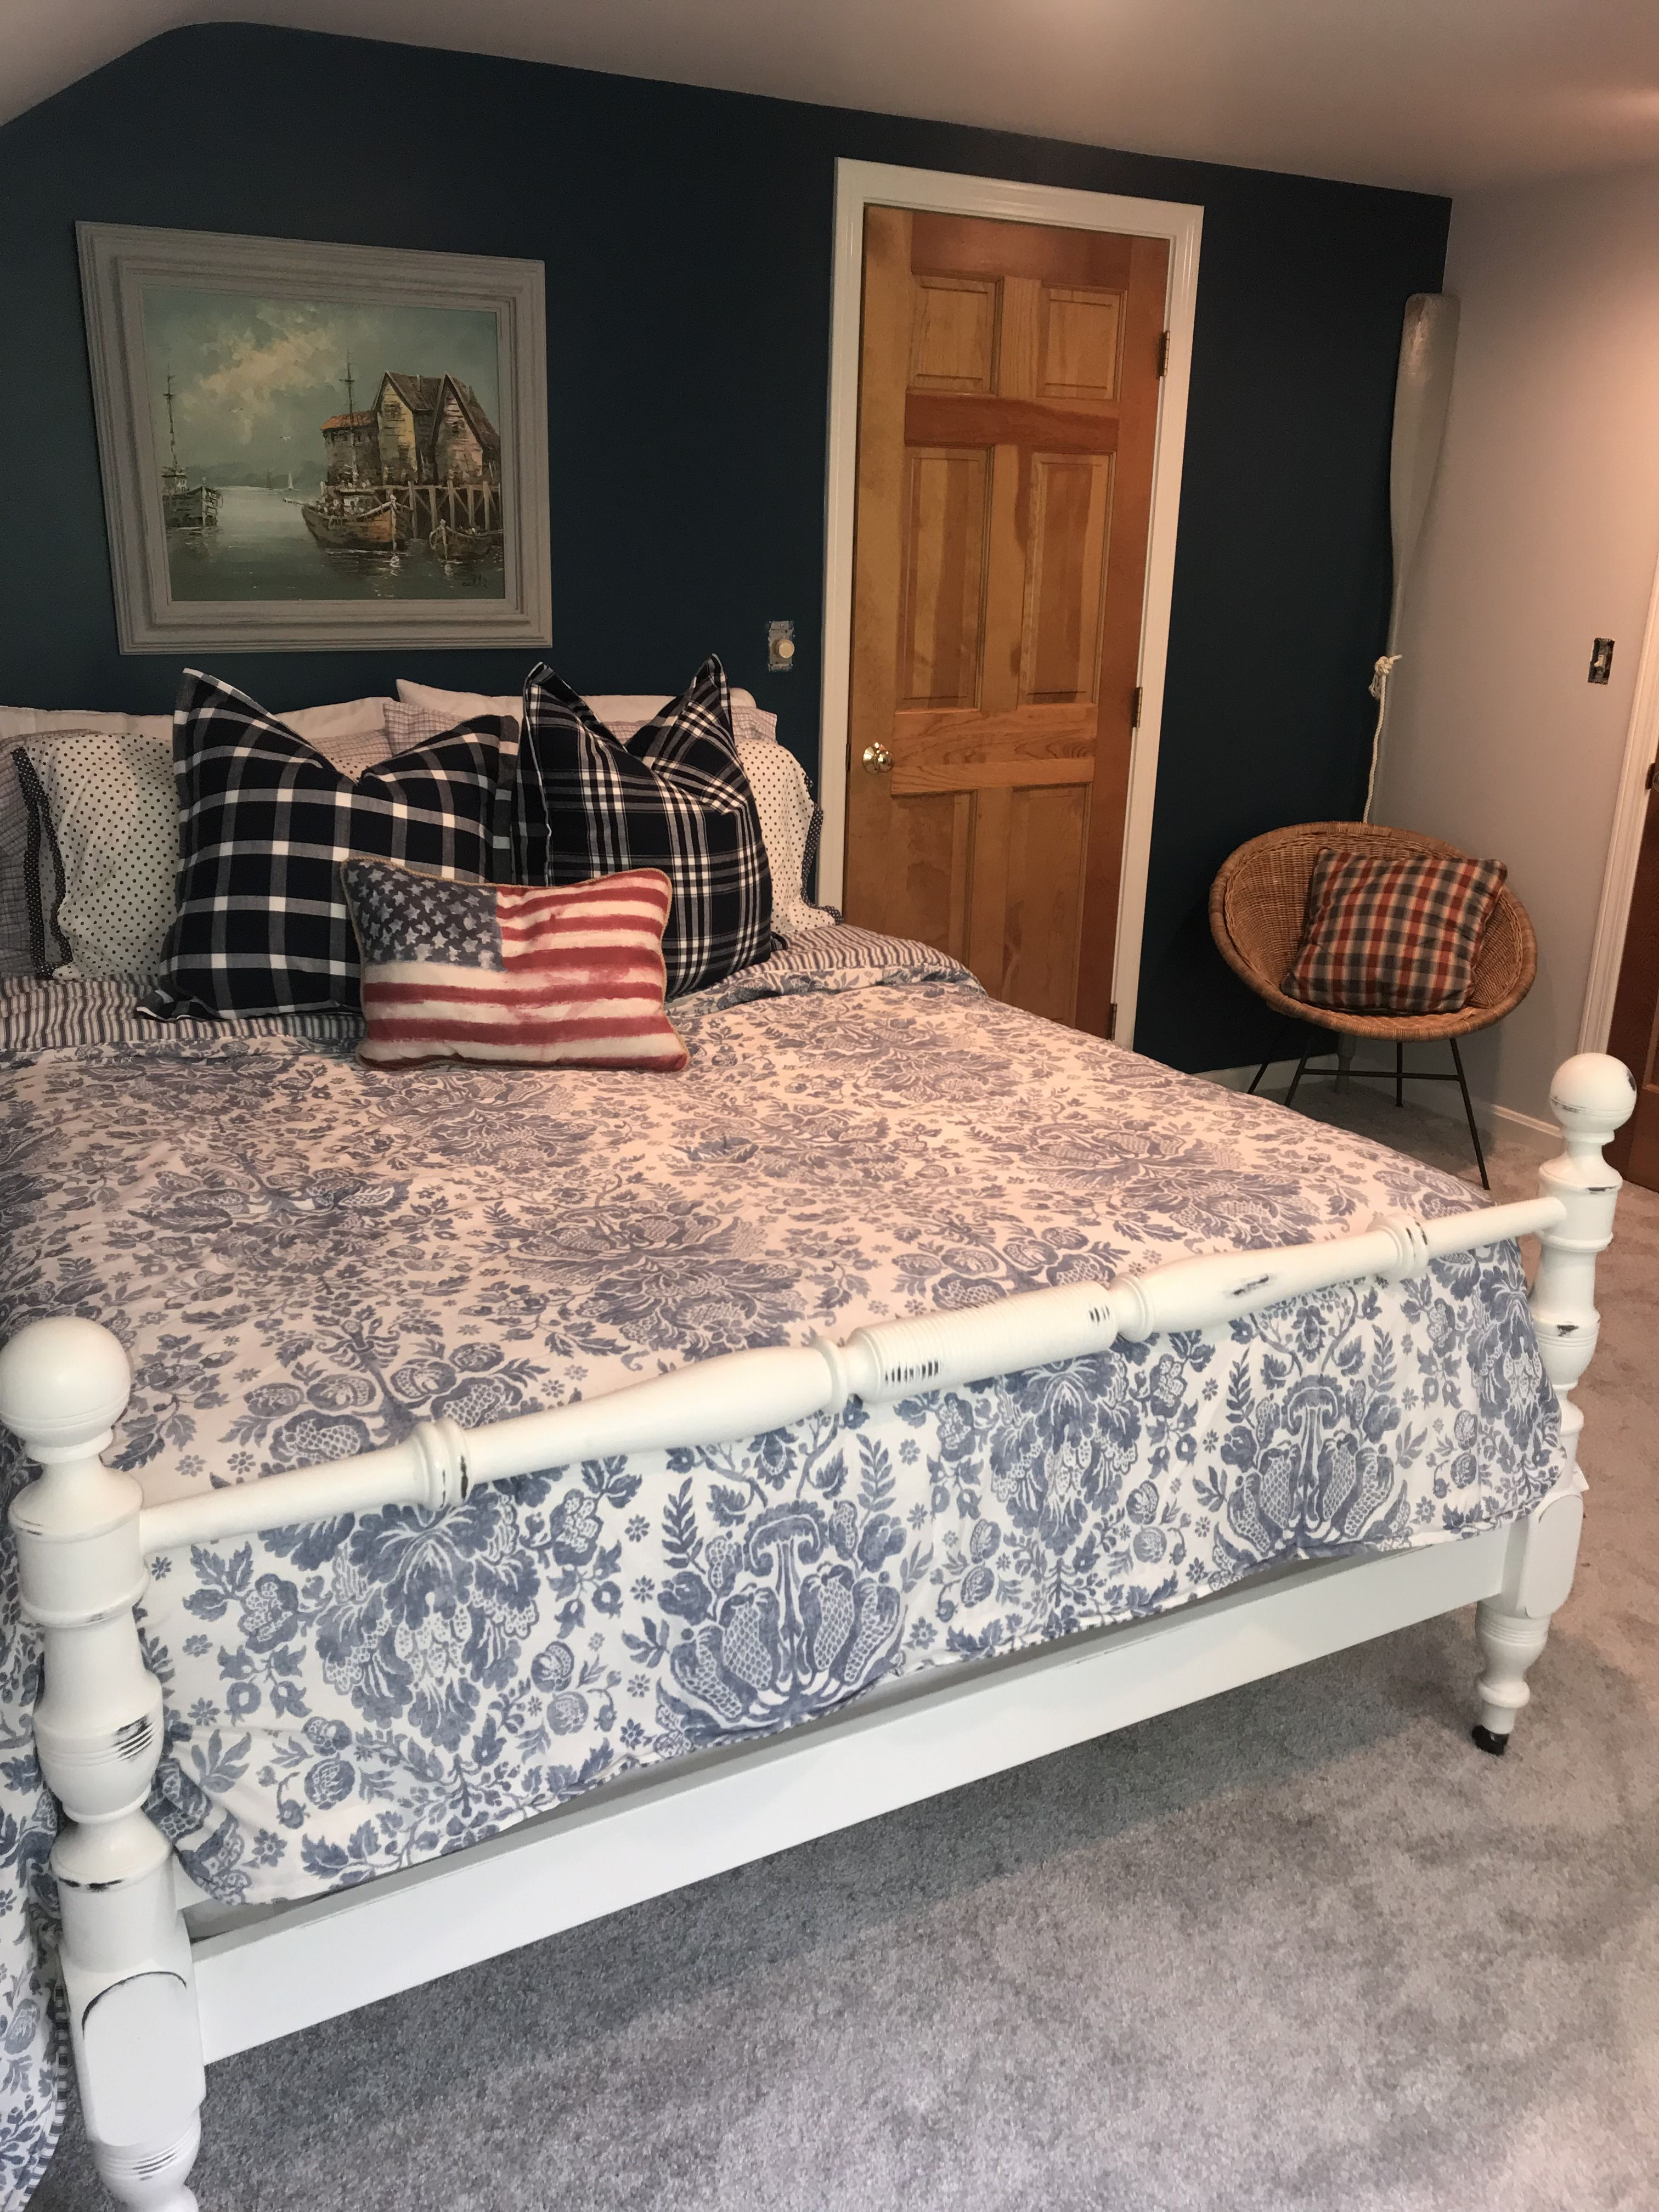 Cannonball! Cannonball bed, Bed, Furniture